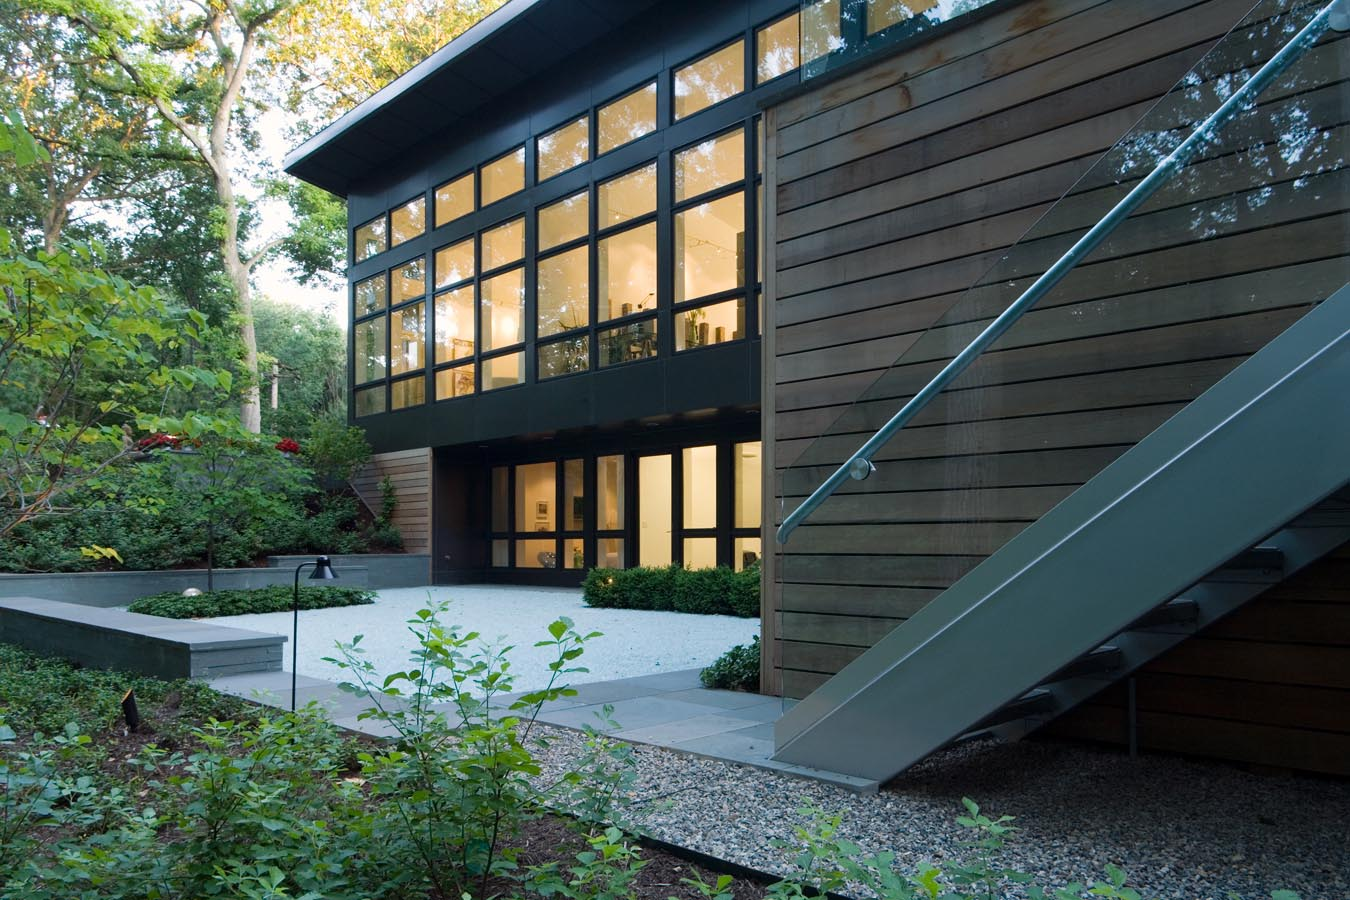 Mcintosh poris architects - House of bedrooms bloomfield hills mi ...